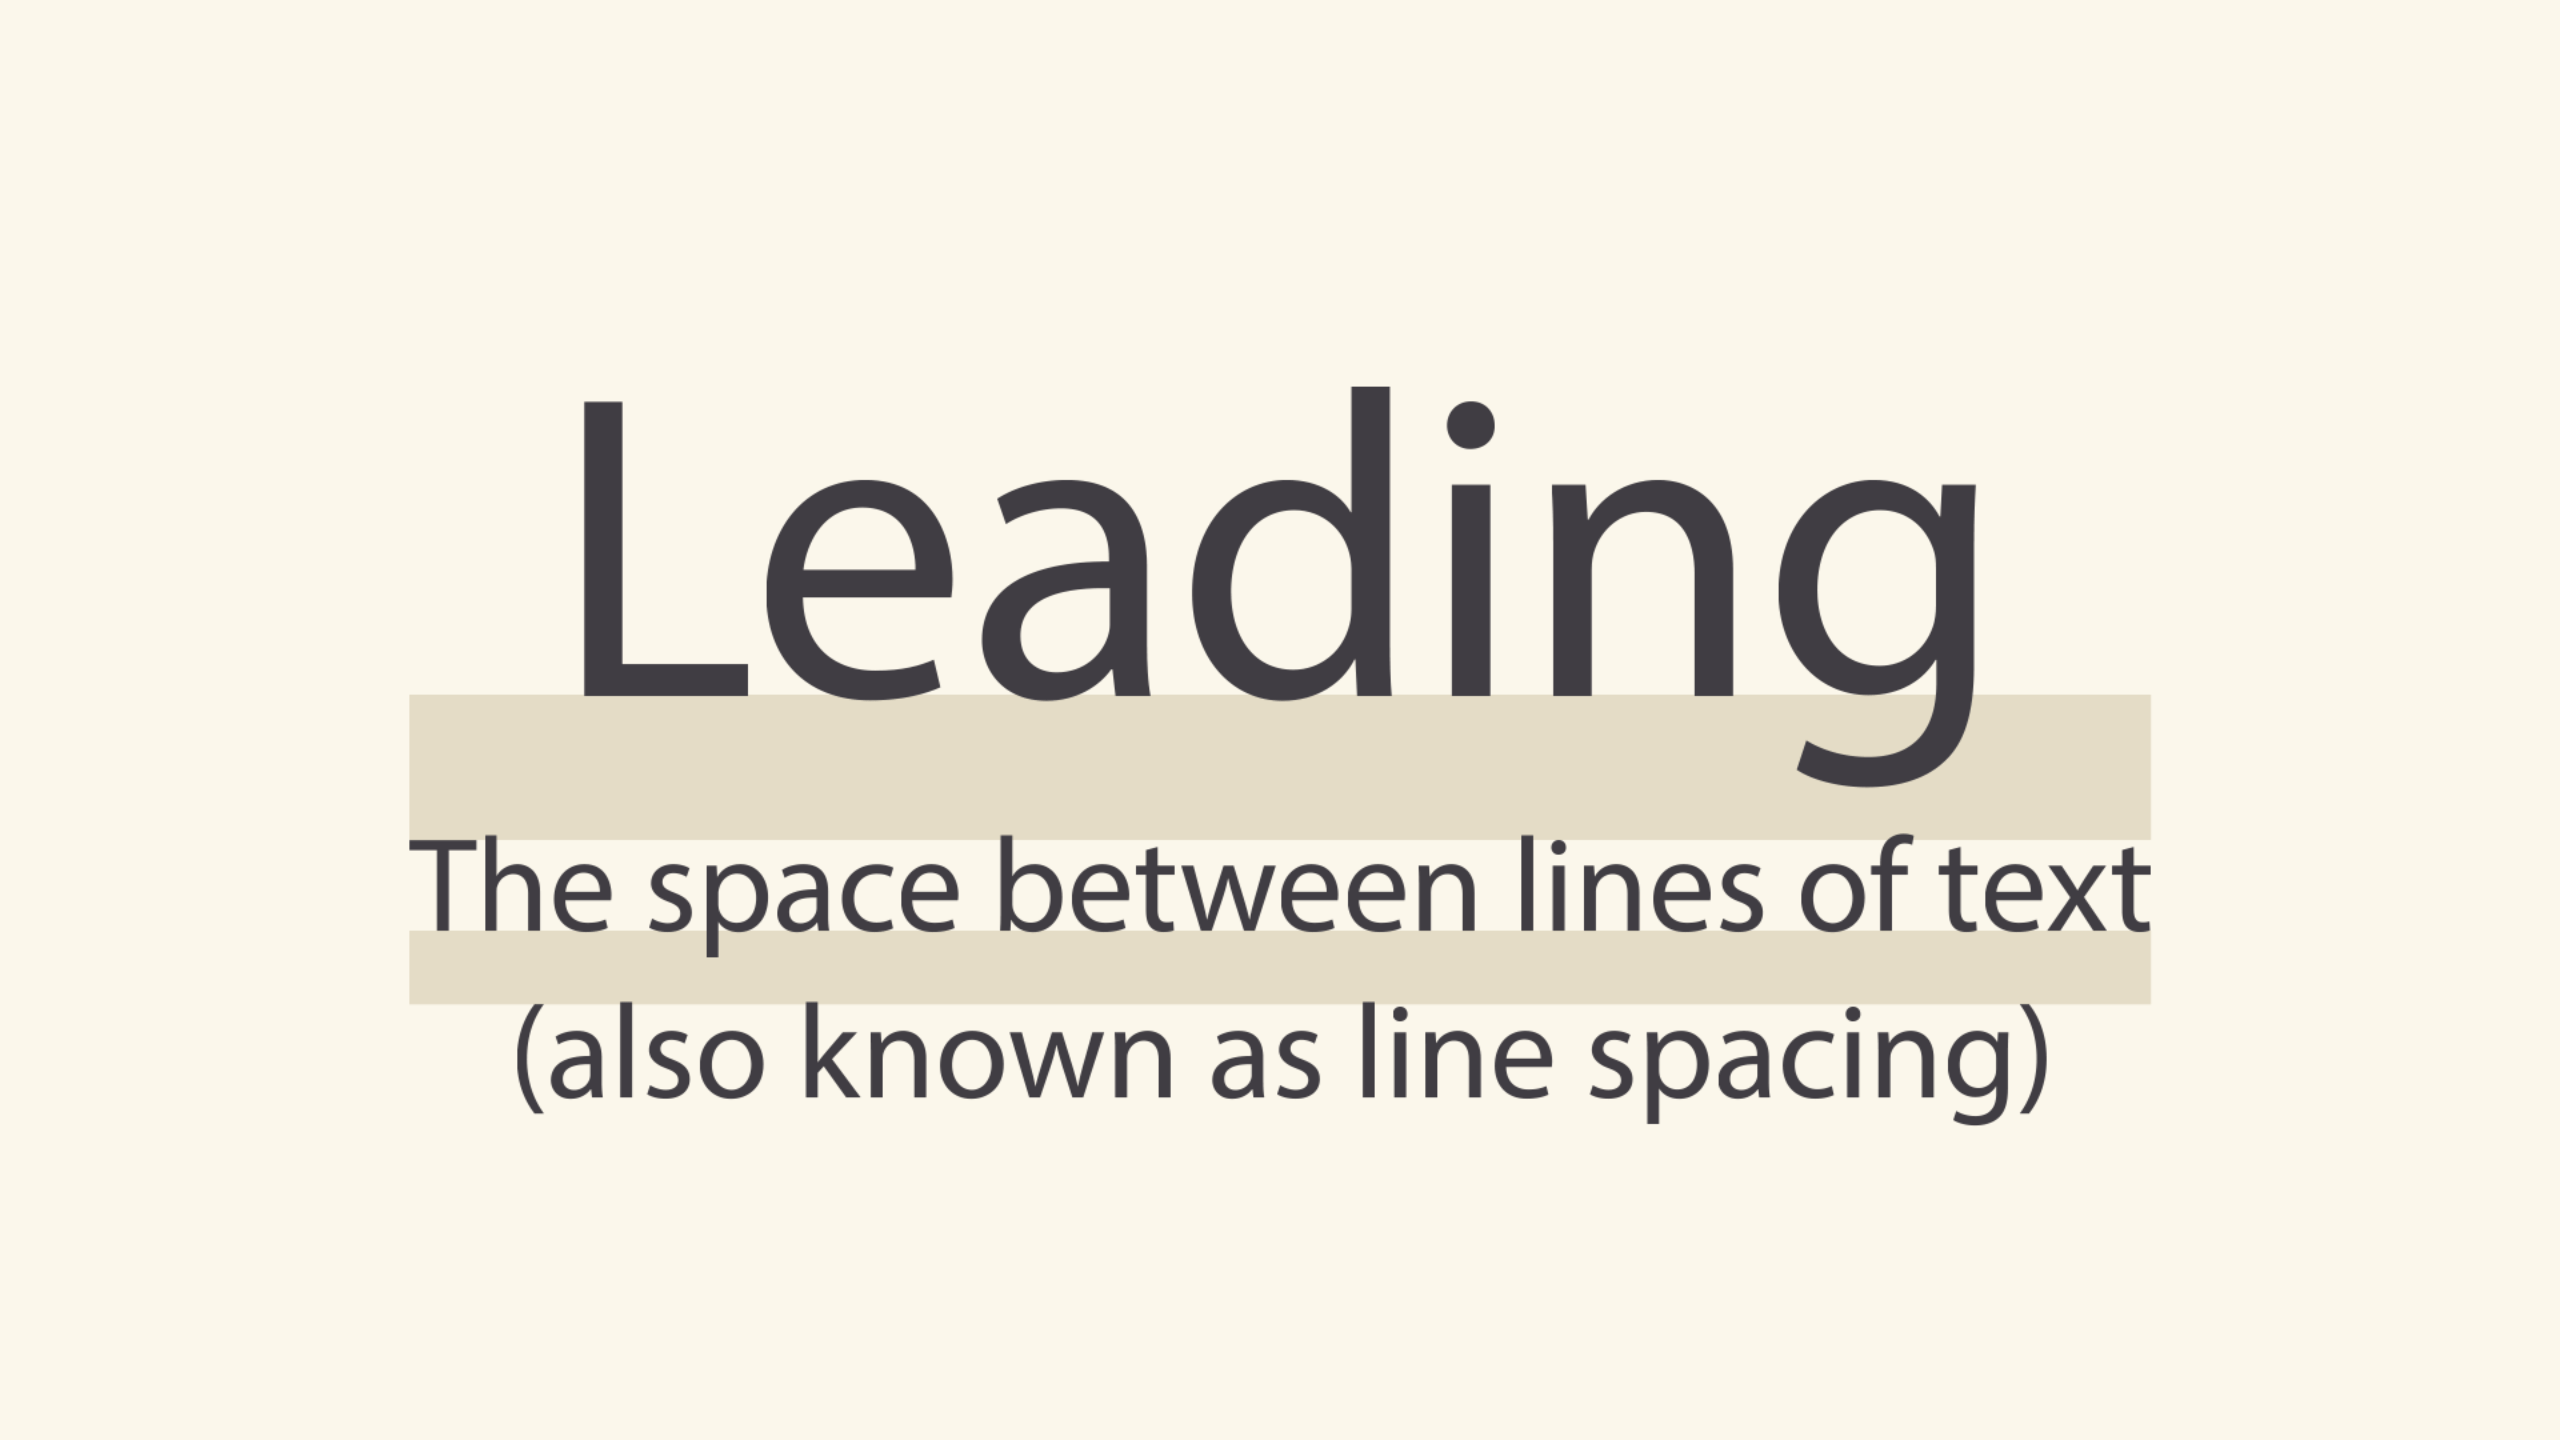 leading, or line spacing